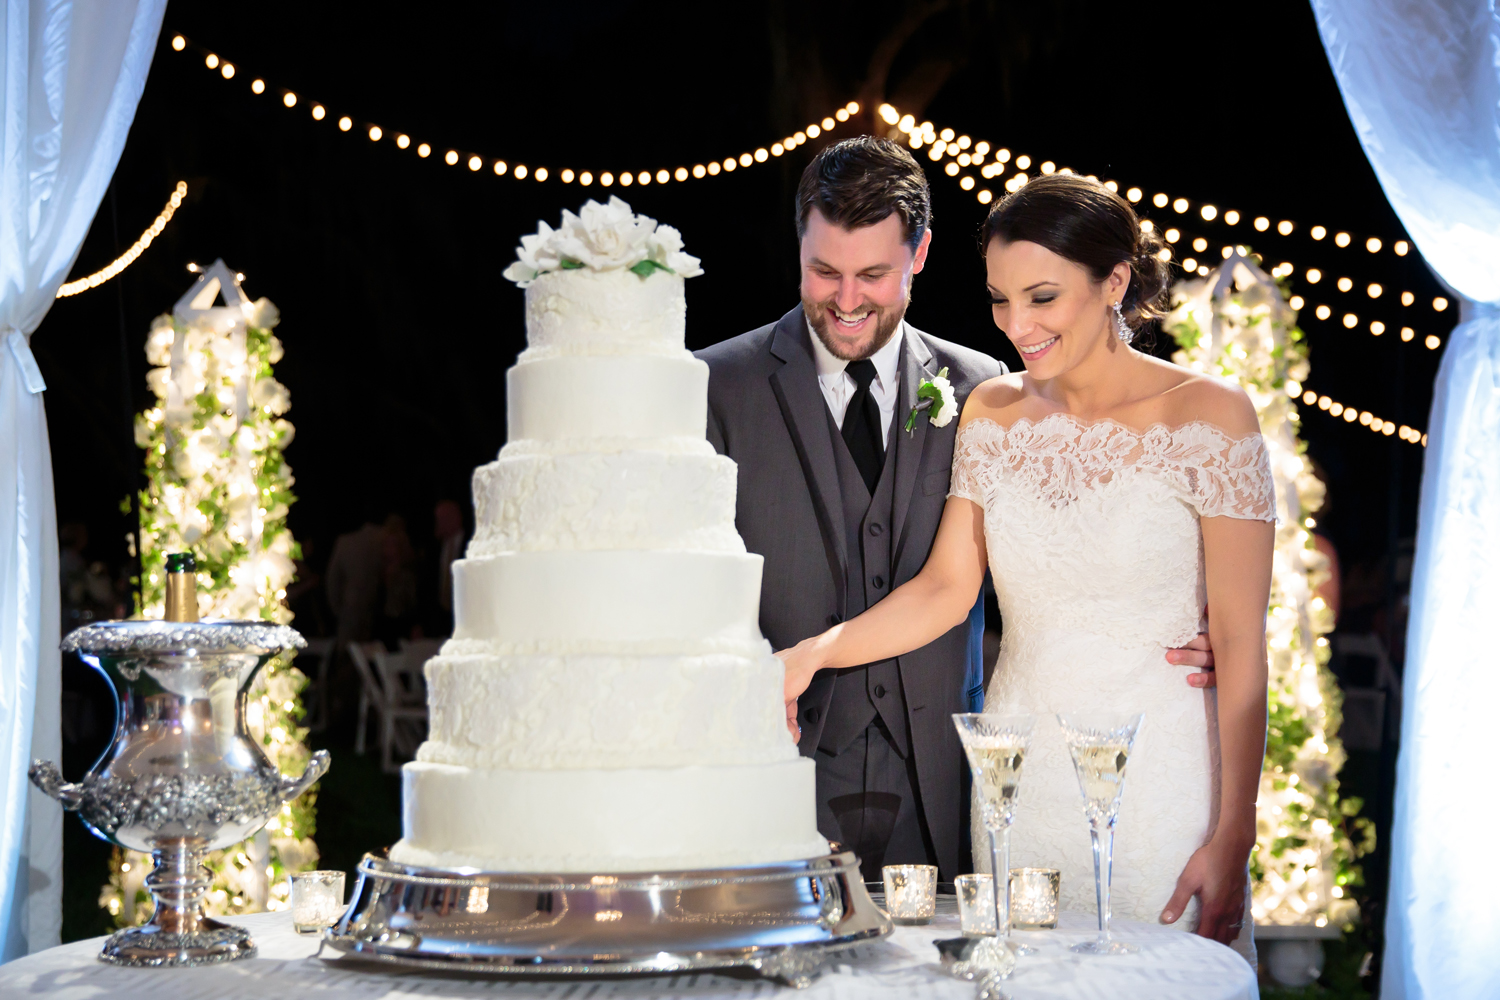 Songs To Play During Your Wedding Cake Cutting